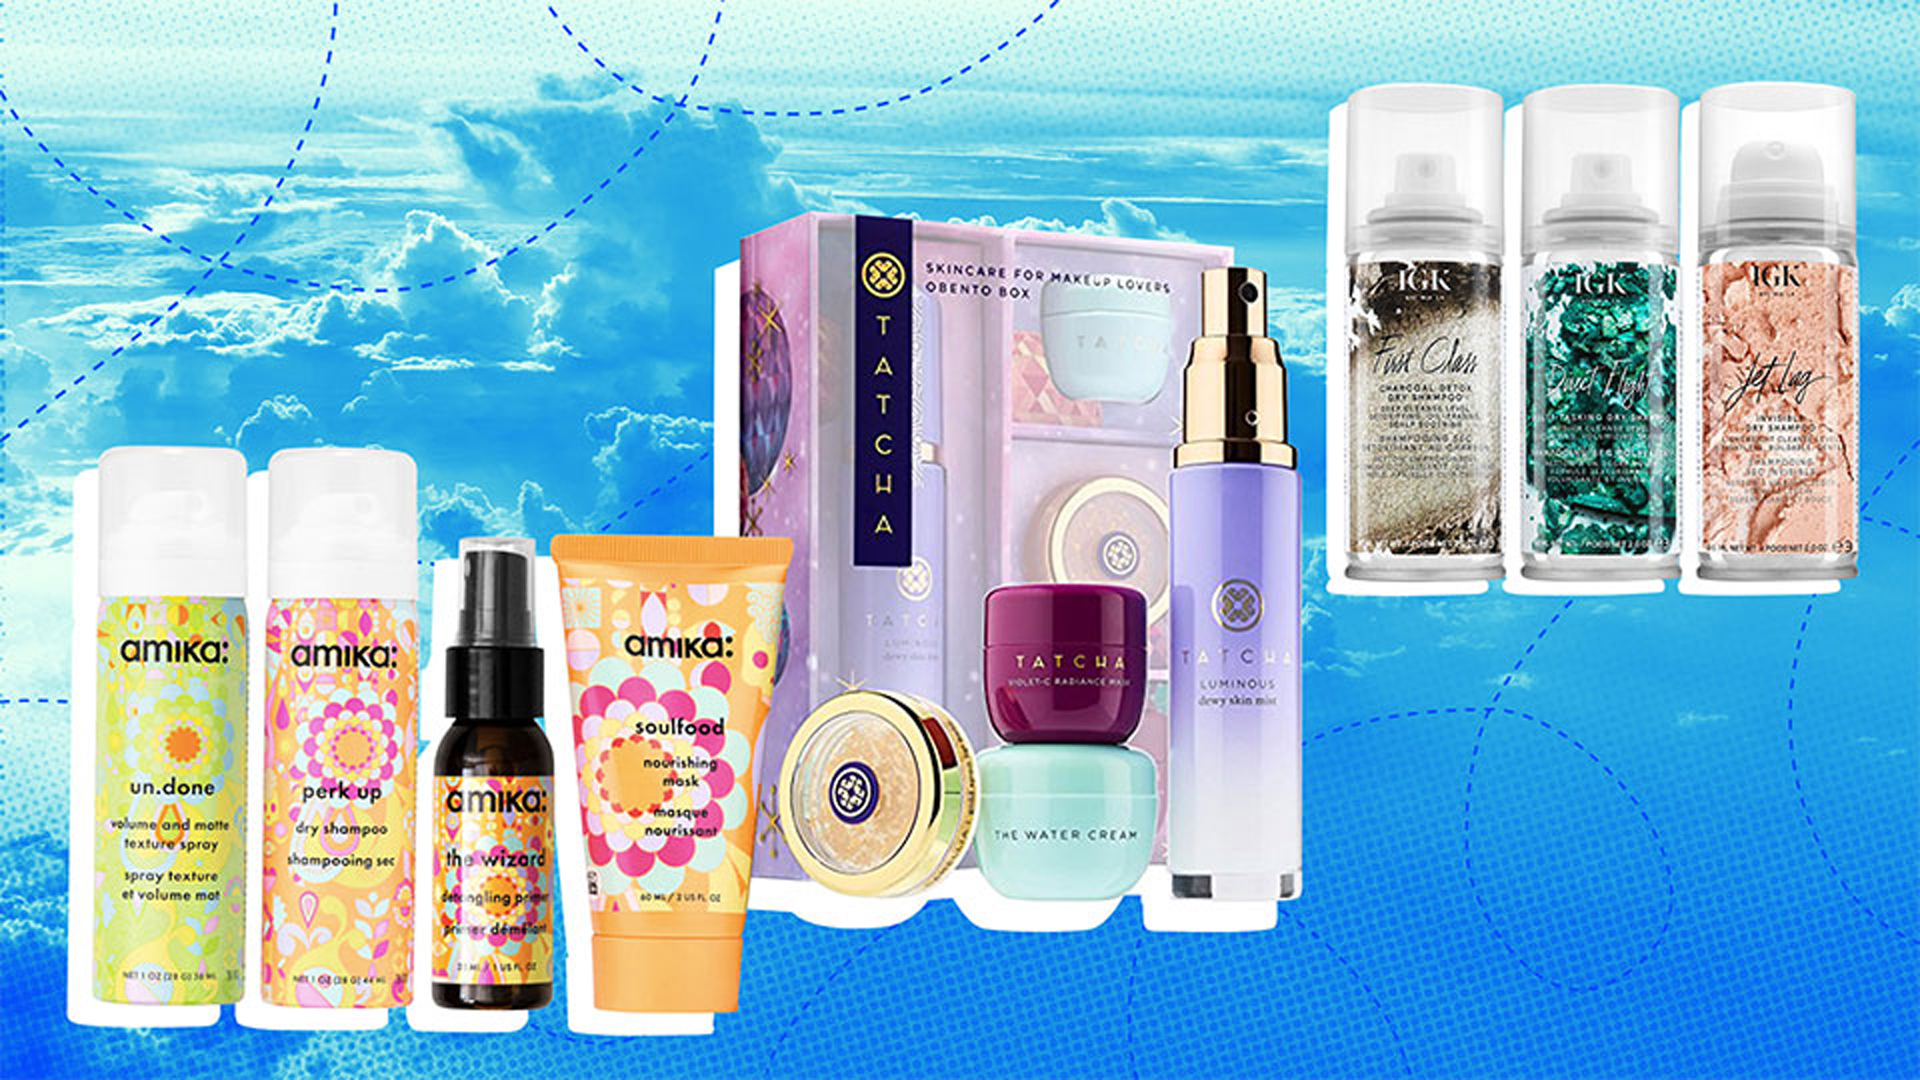 Travel Beauty Kits That Take the Stress Out of Holiday Jet-Setting